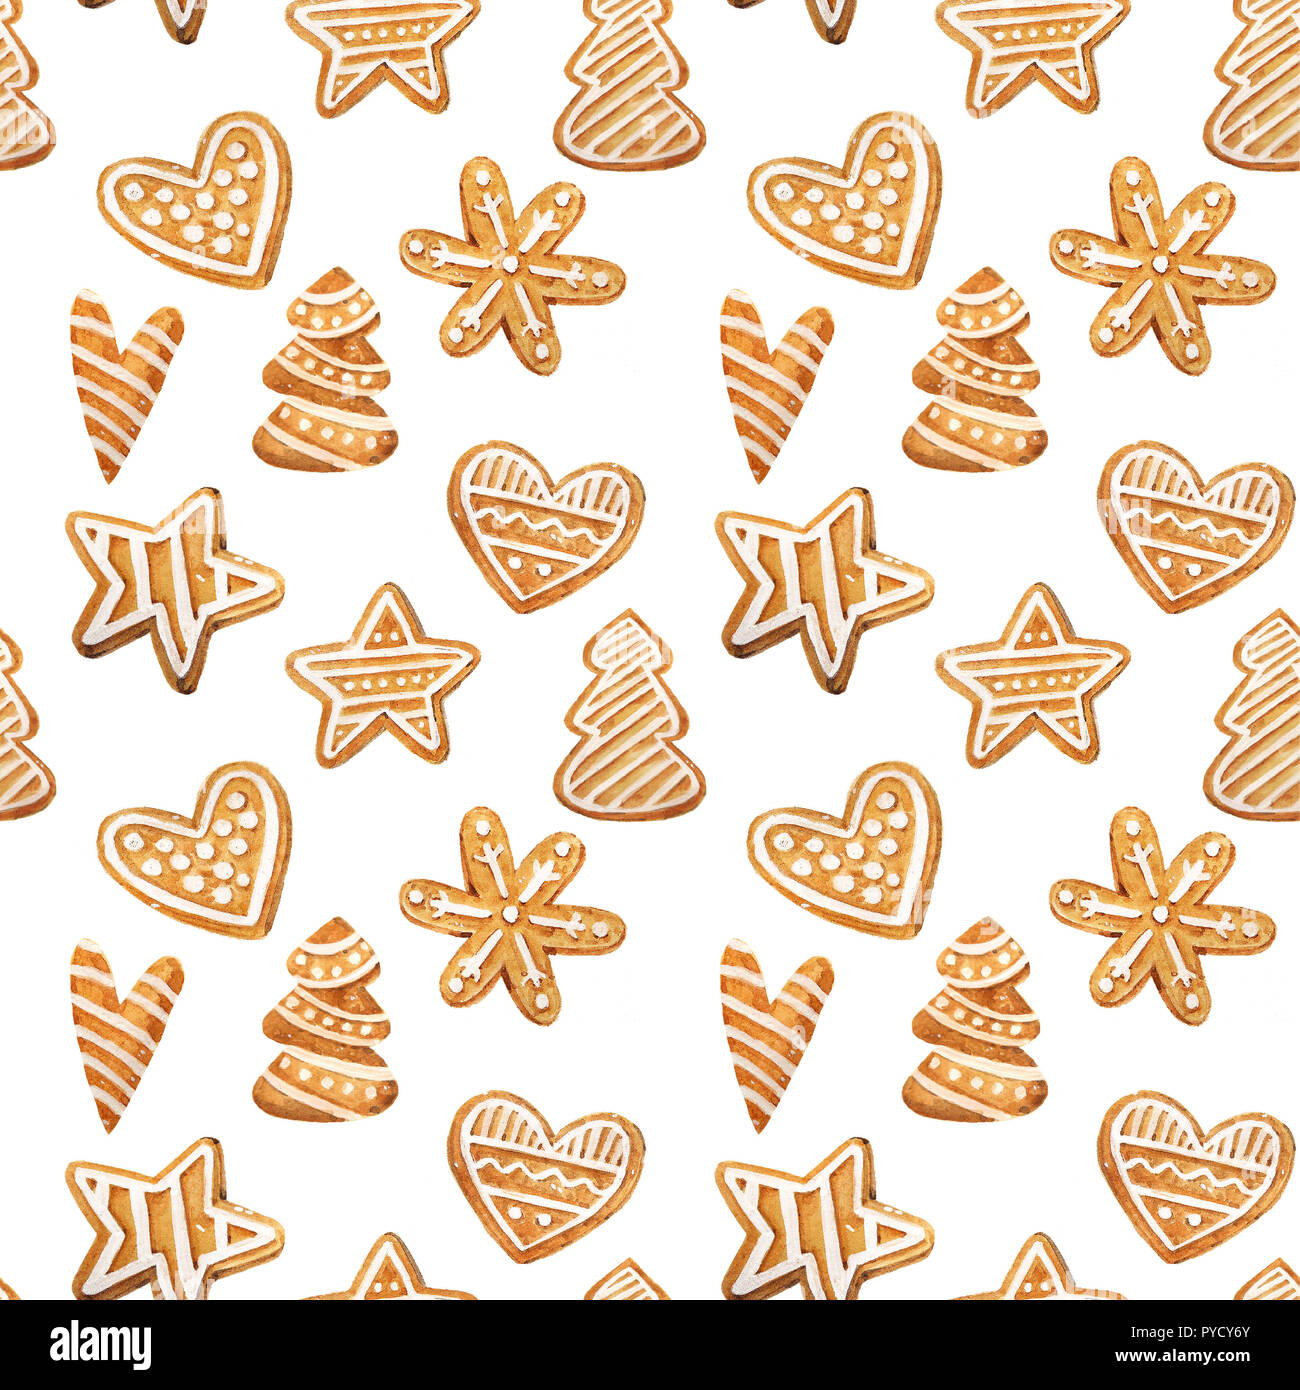 christmas gingerbread seamless pattern ginger cookies on blue background watercolor illustration cute xmas background for wallpaper gift paper PYCY6Y